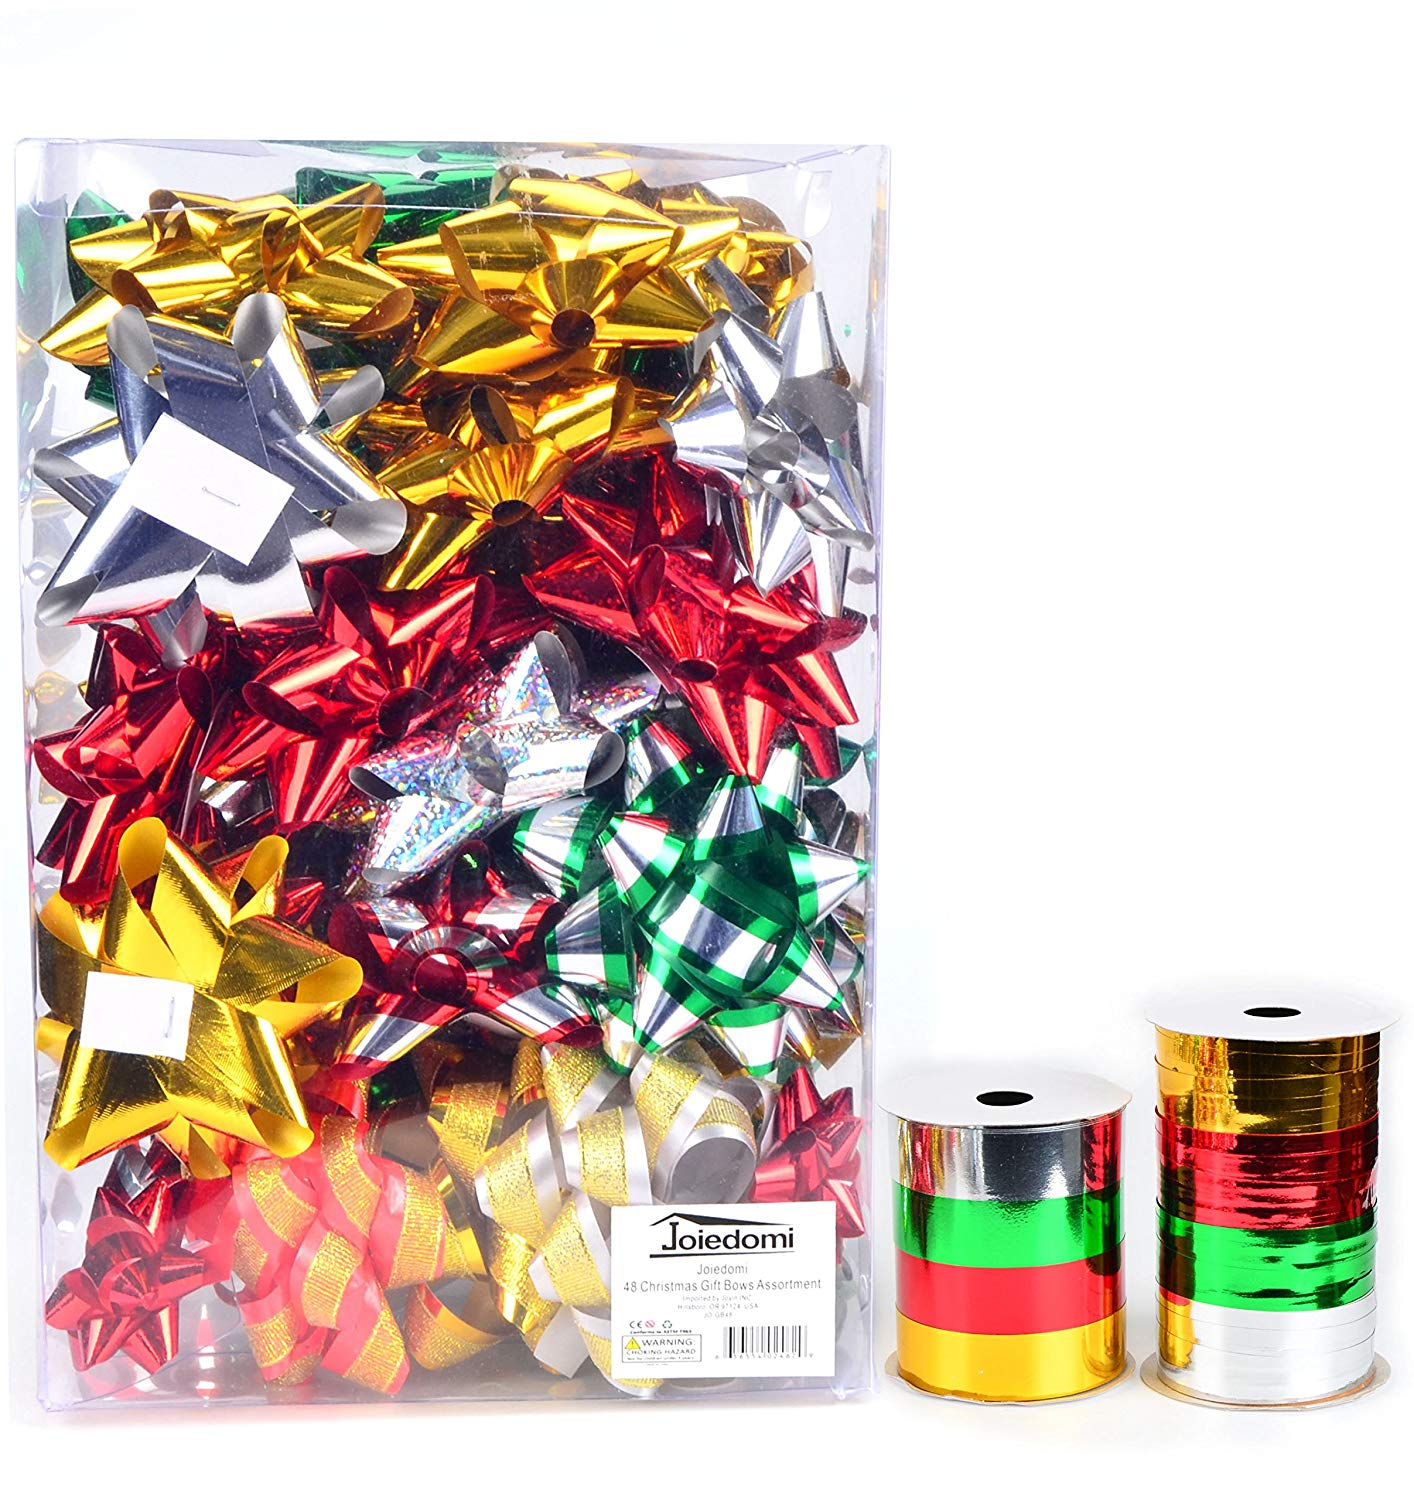 48 Self-Adhesive Bows & 8 Rolls of Christmas Curling Ribbons